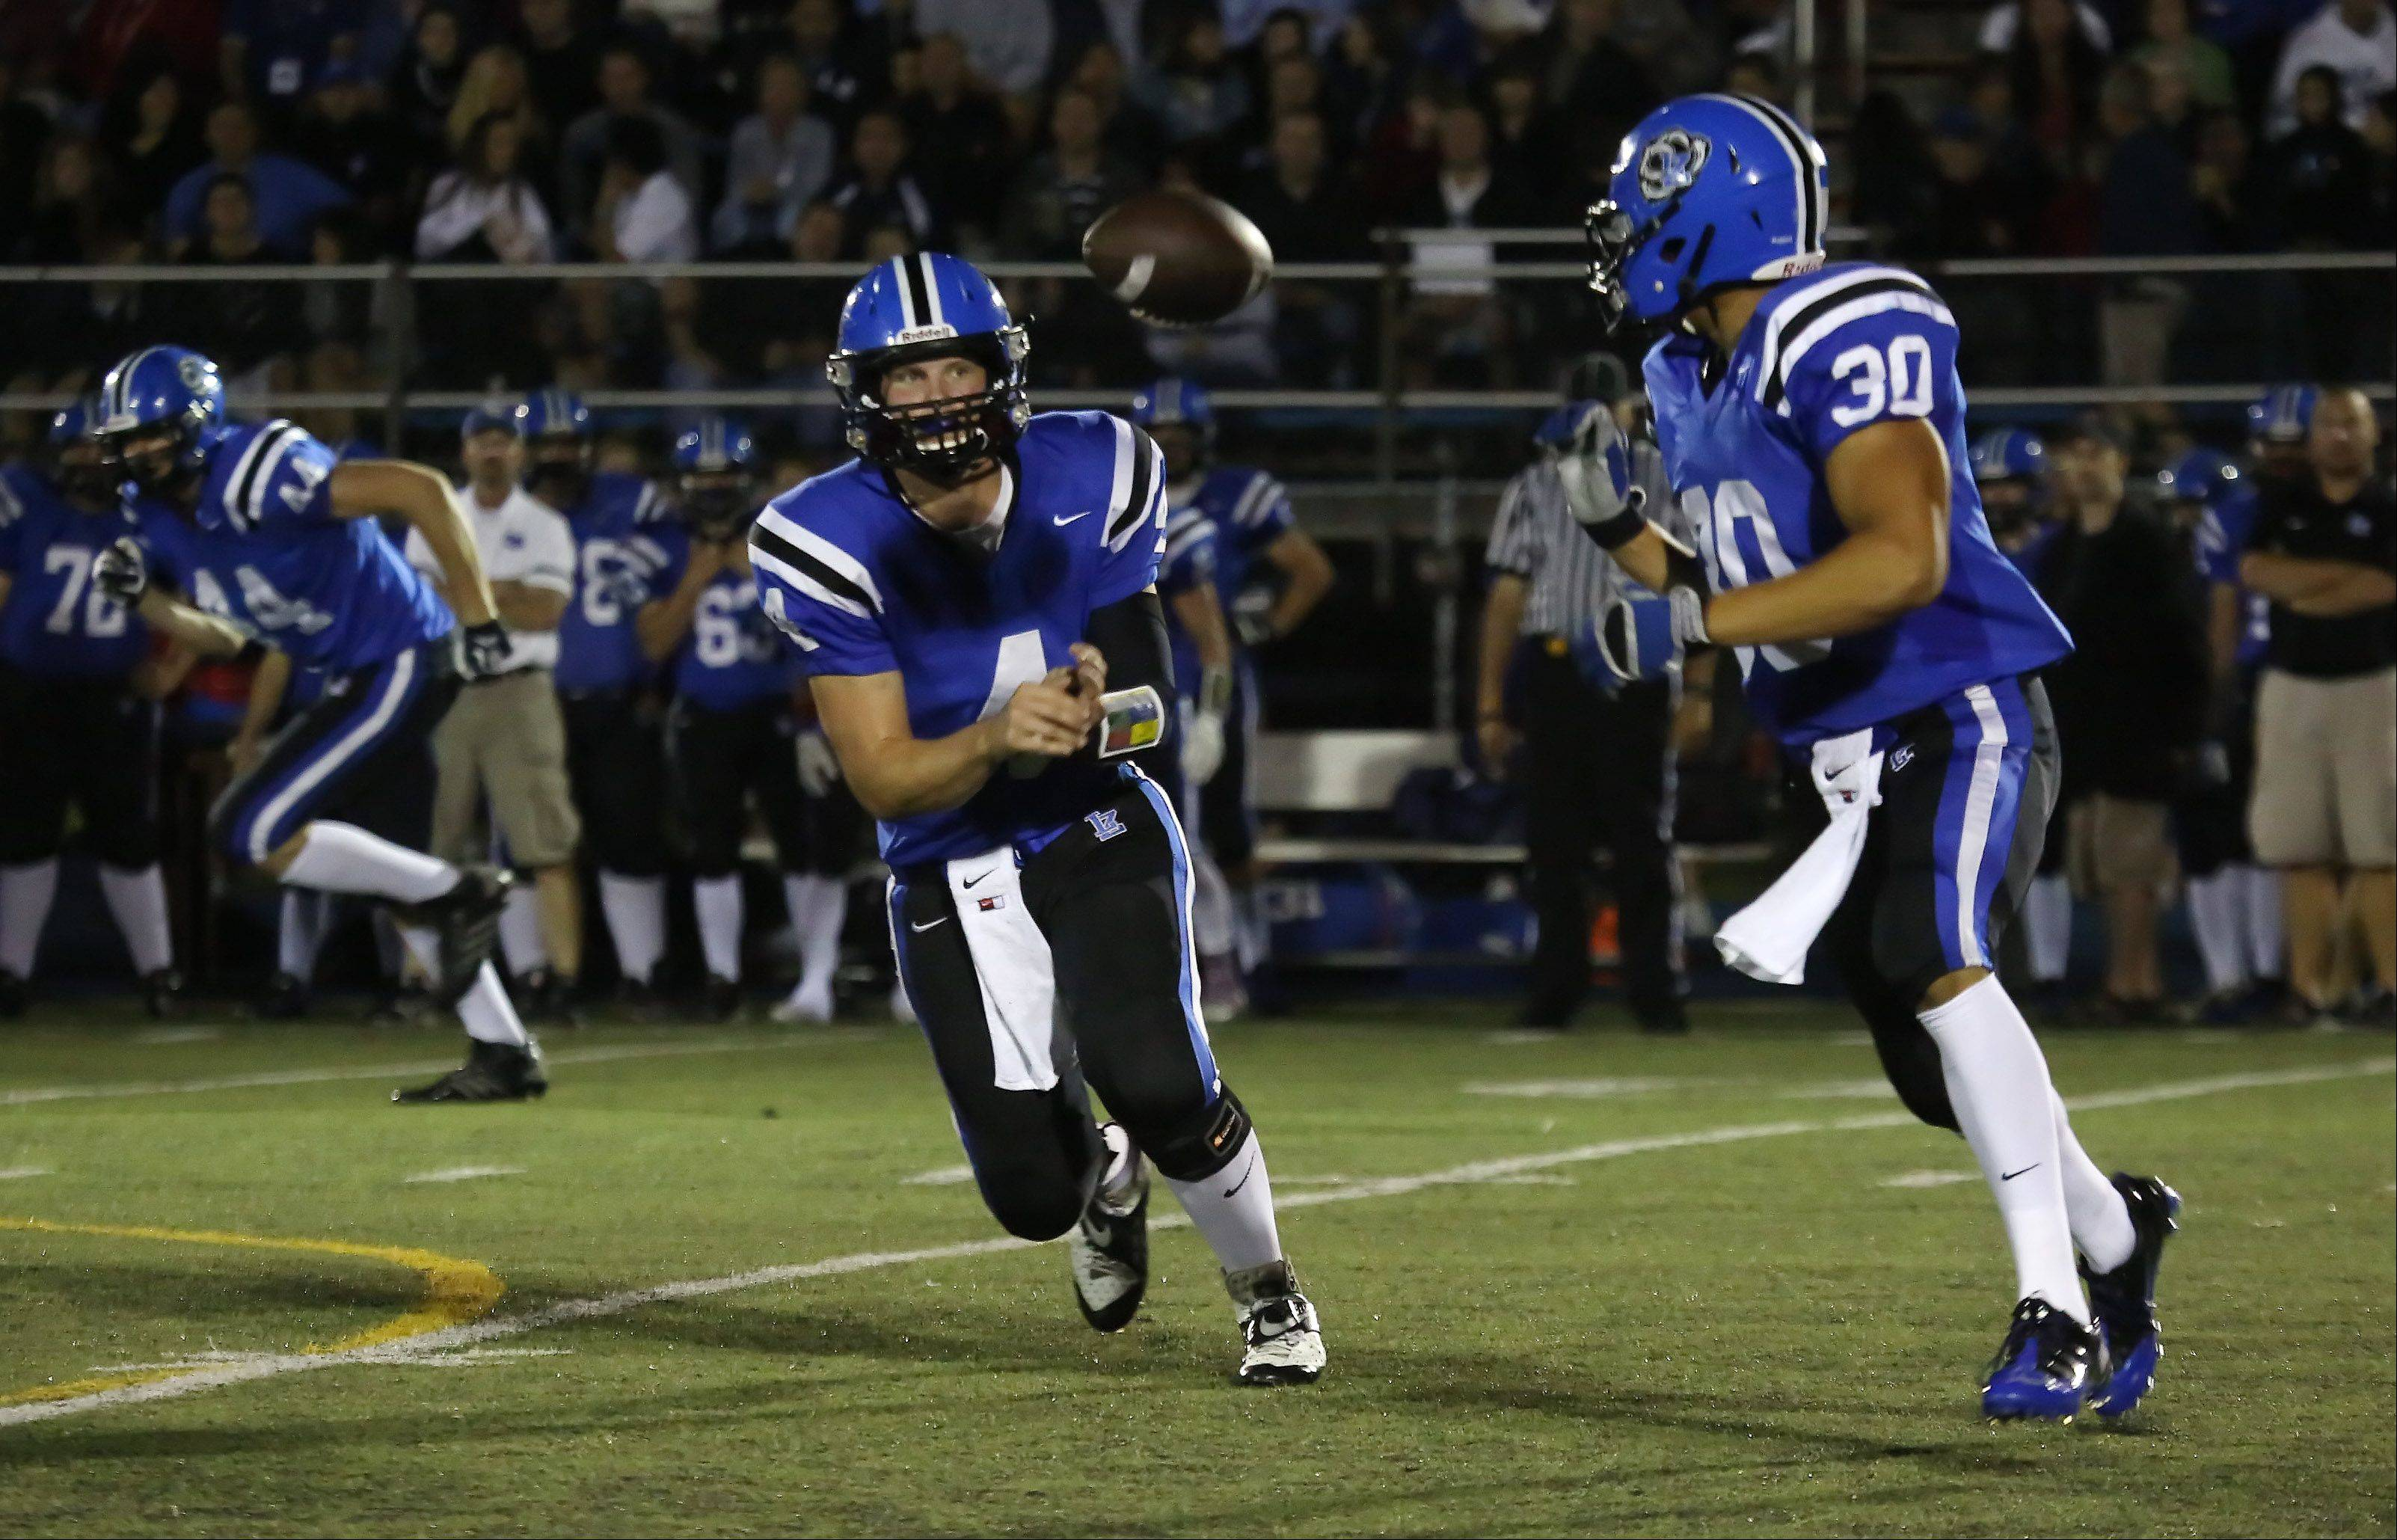 Lake Zurich quarterback Noah Allgood pitches out to running back Ben Klett.